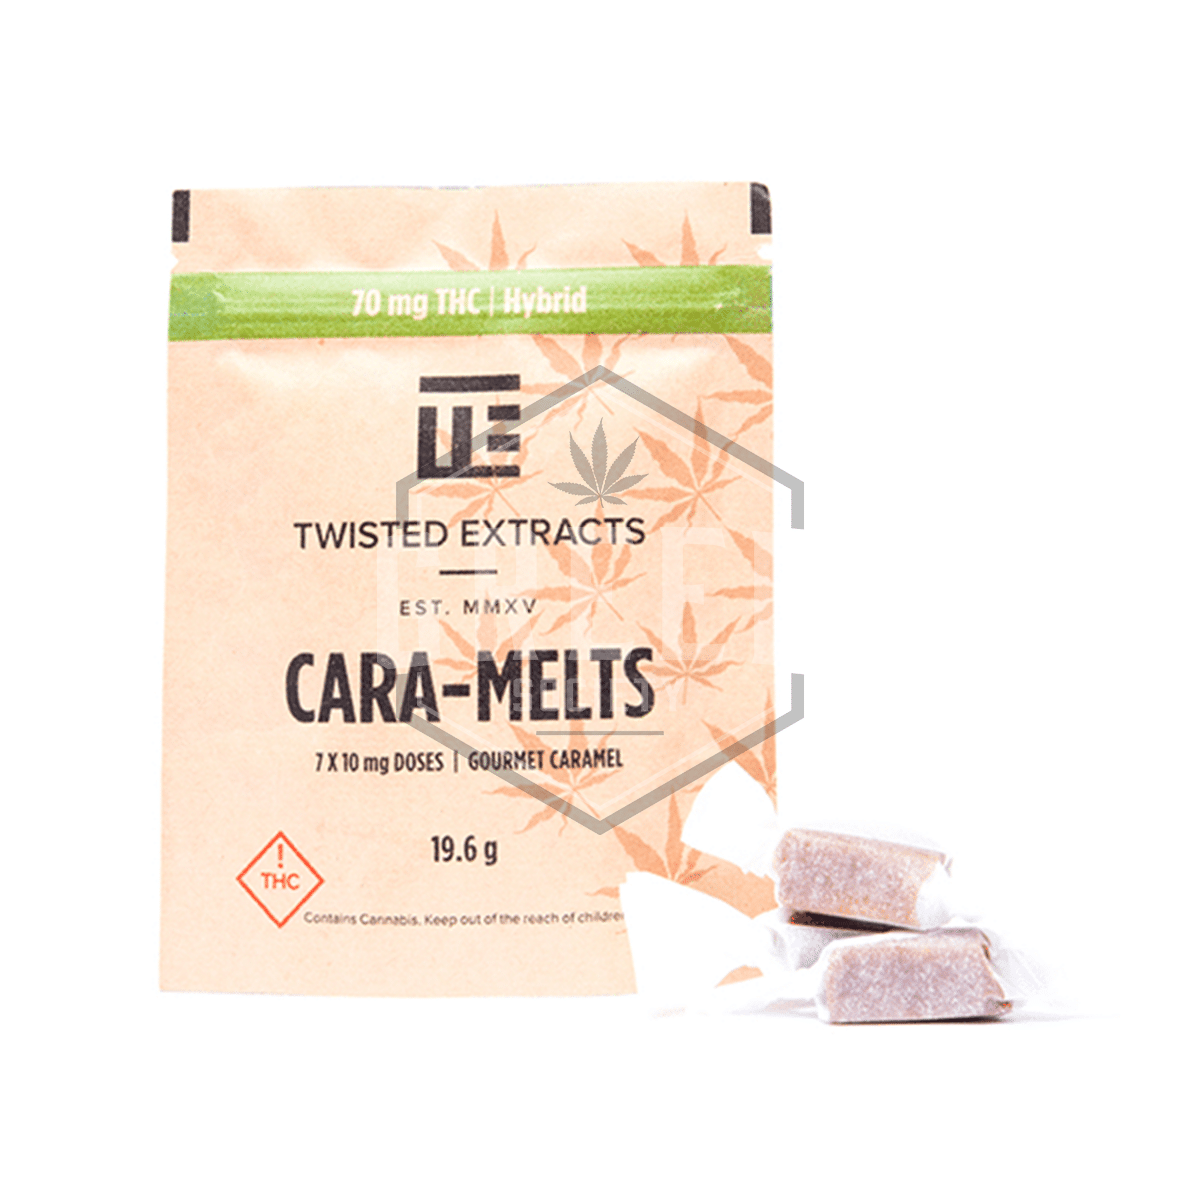 THC Hybrid Cara-Melts by Twisted Extracts by Green Society - Image © 2018 Green Society. All Rights Reserved.